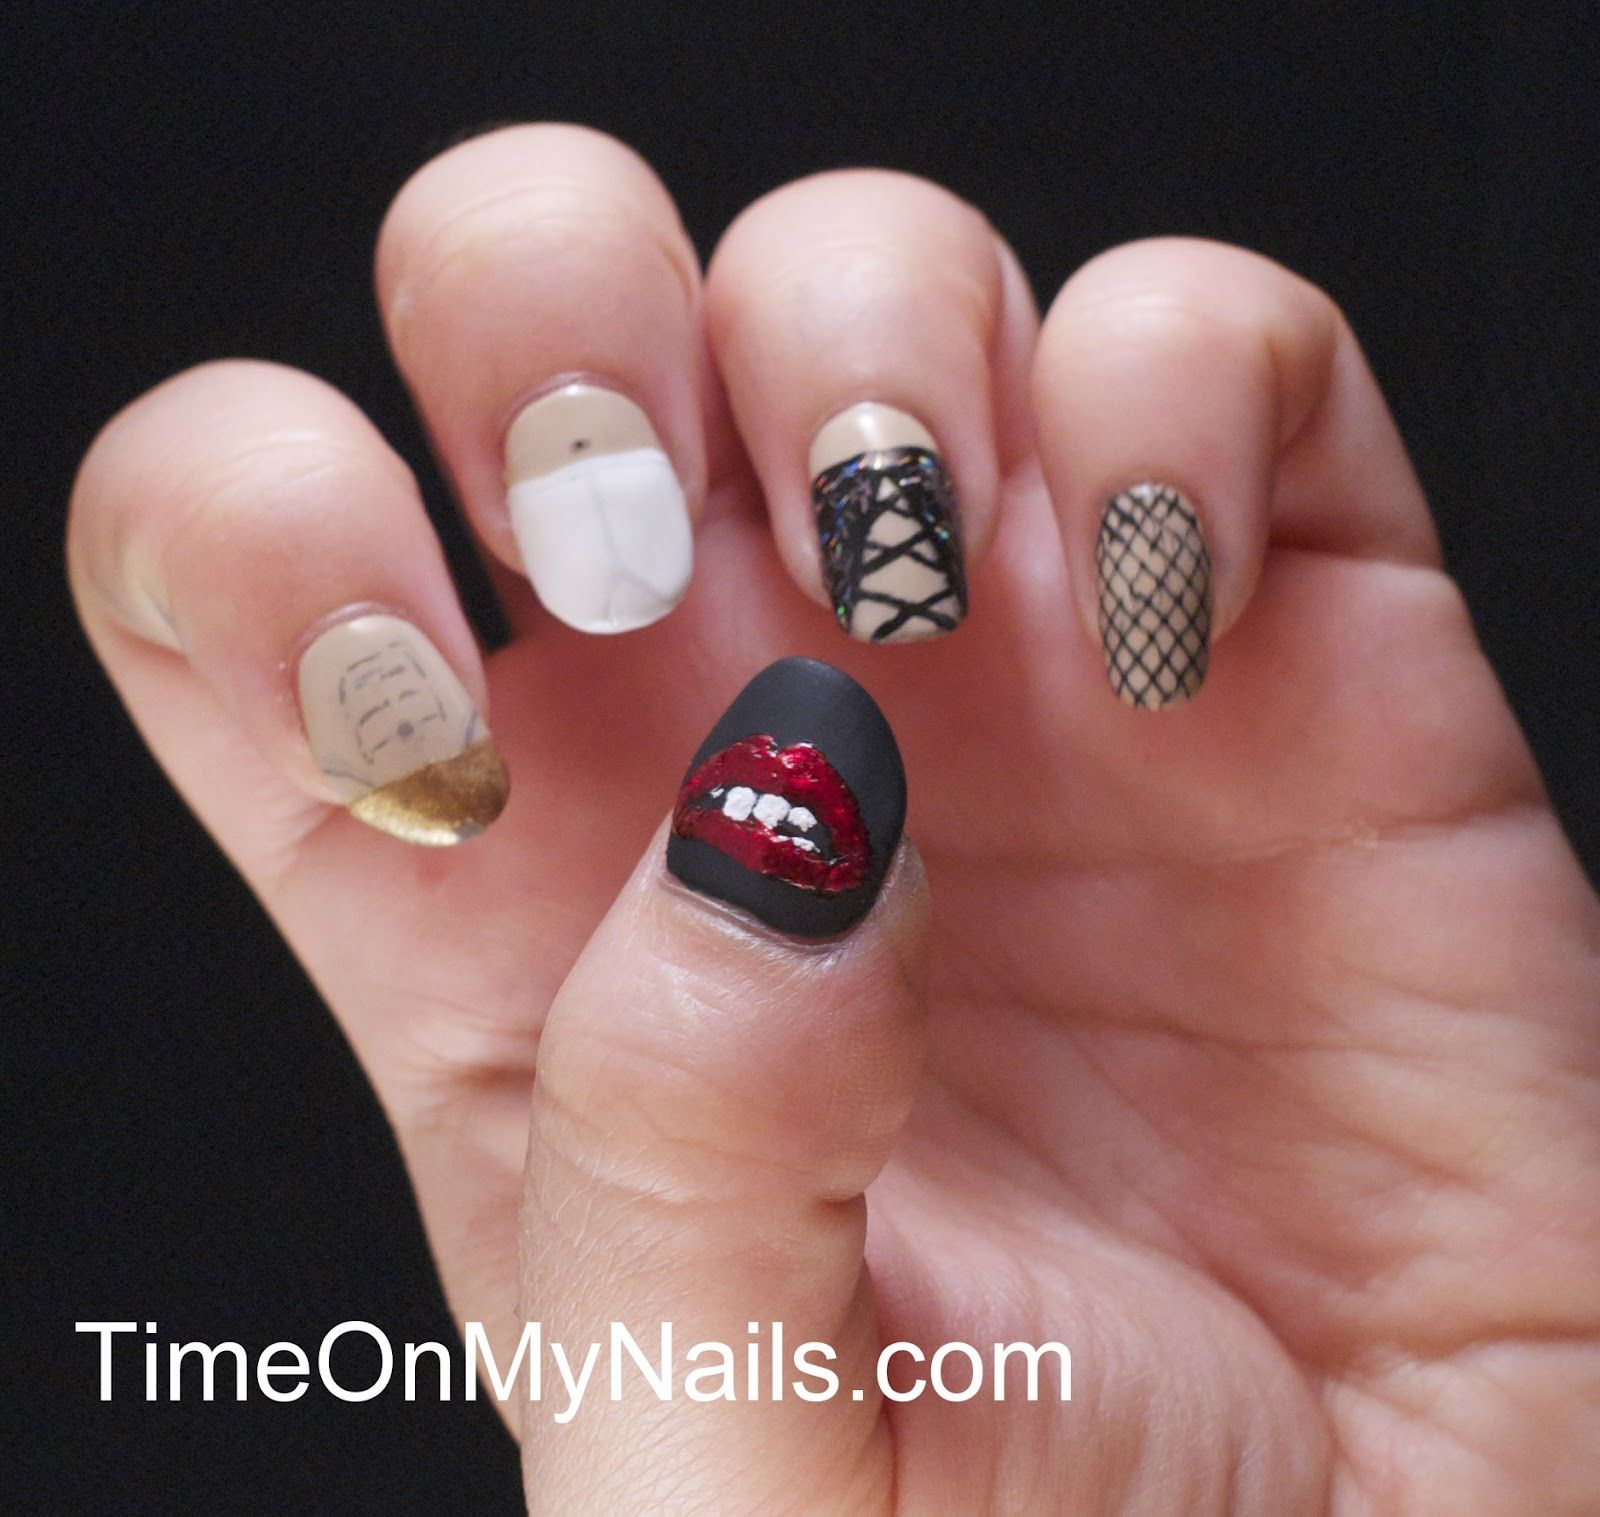 Rocky horror picture show nails | Nail art | Pinterest | Horror ...